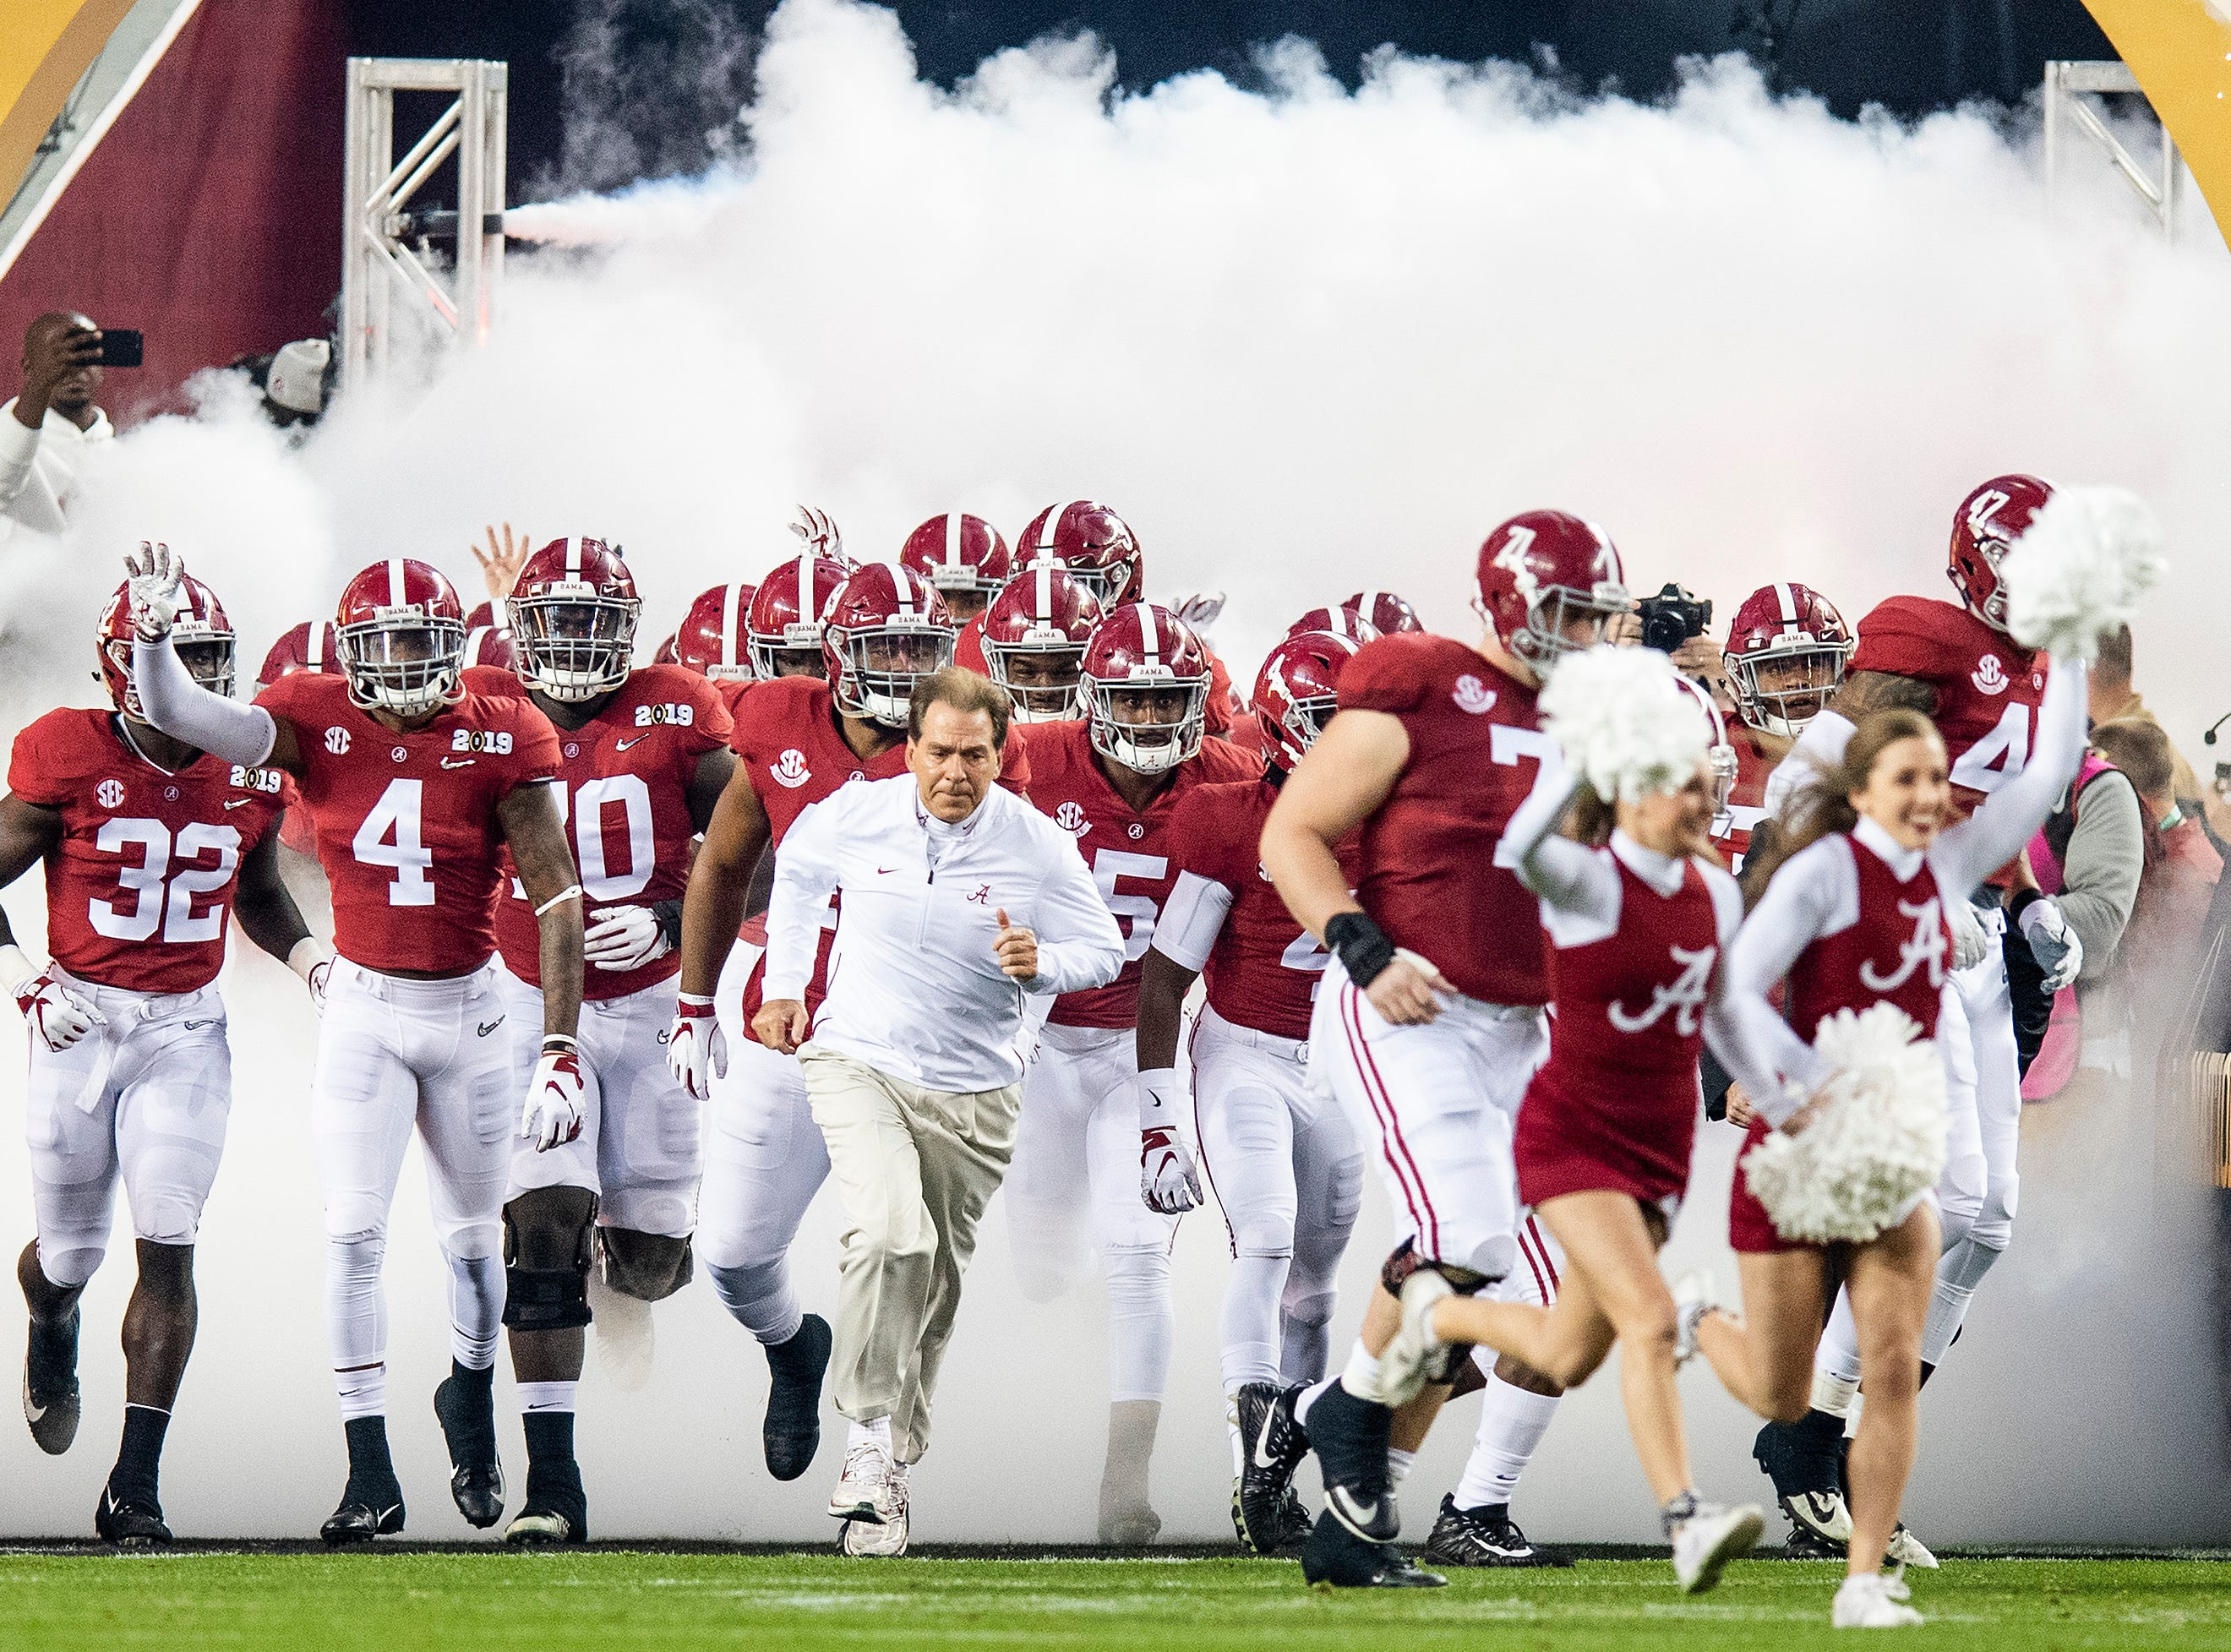 Alabama takes the field for the College Football Playoff National Championship game at Levi's Stadium in Santa Clara, Ca., on Monday January 7, 2019.